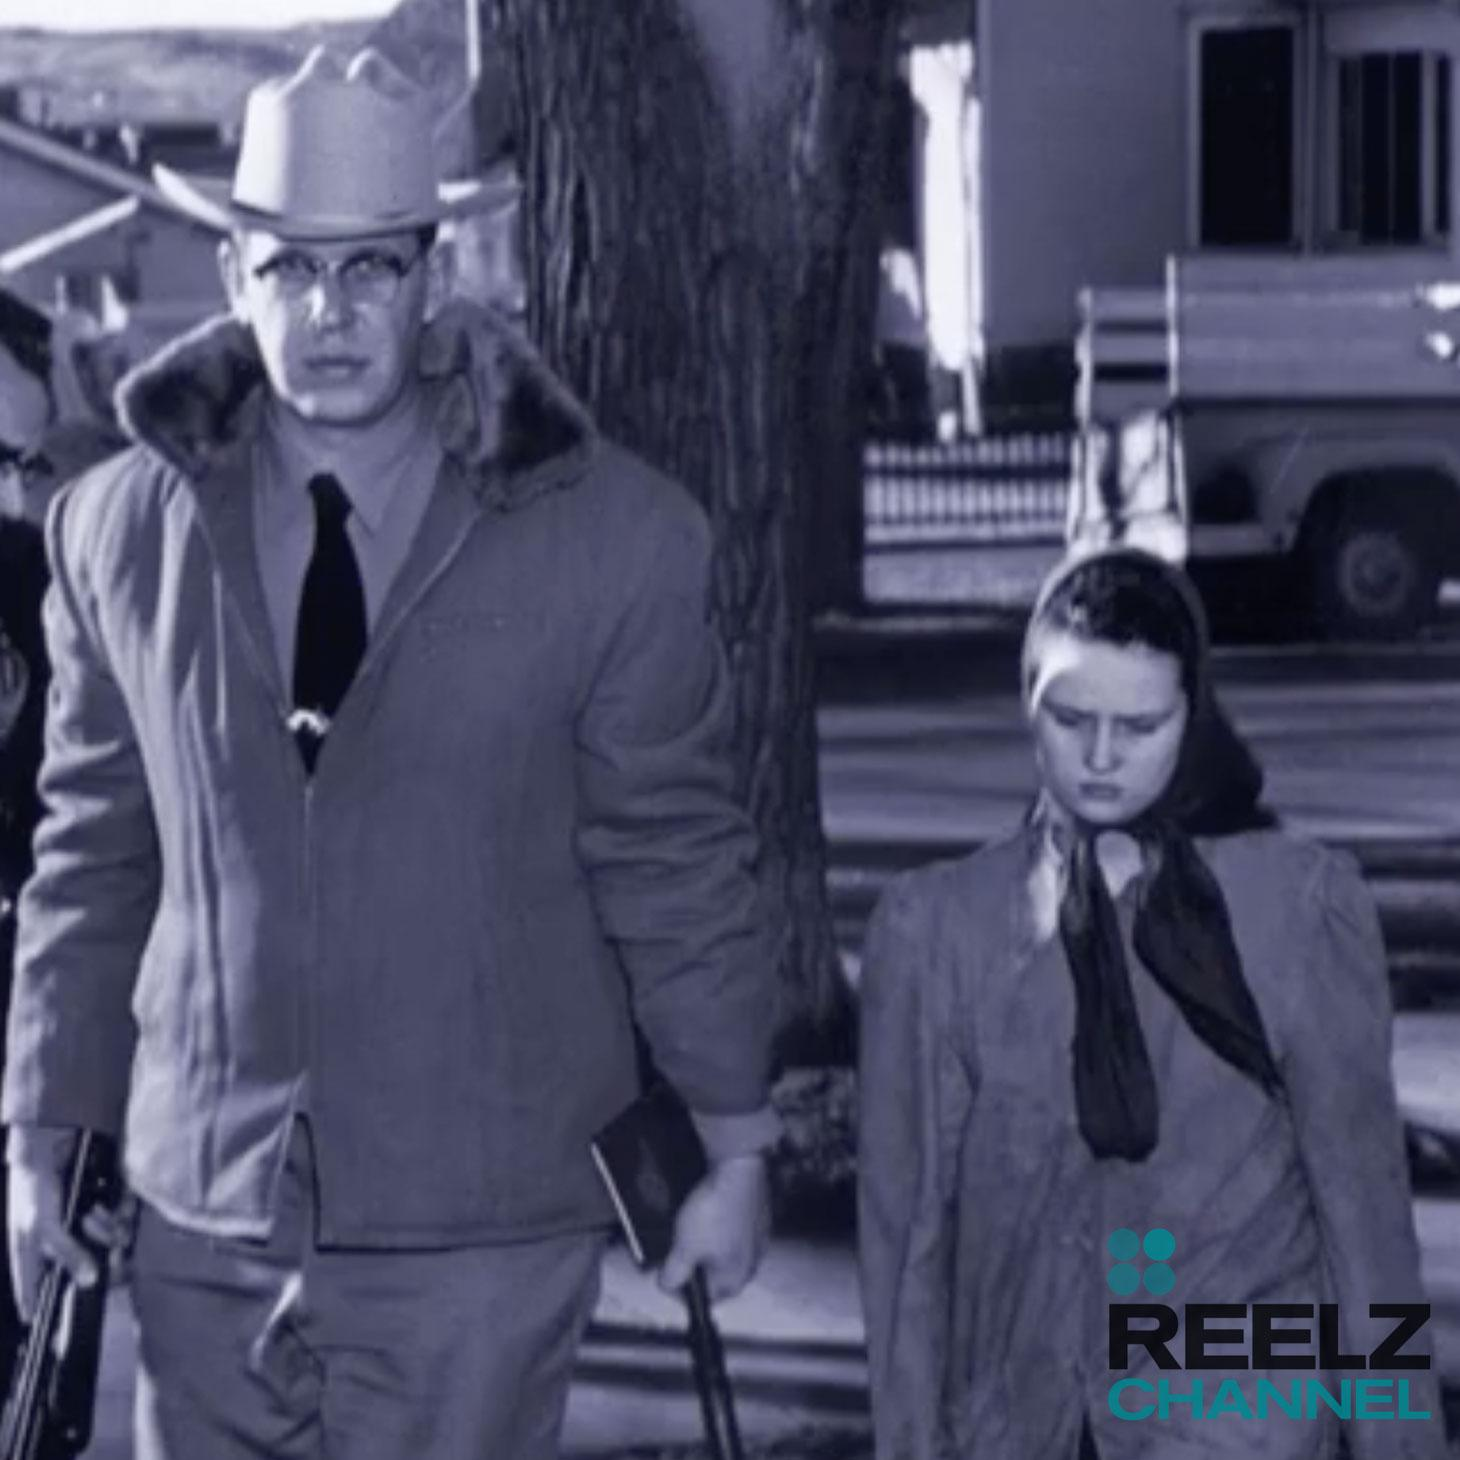 reelz natural born killers preview clip